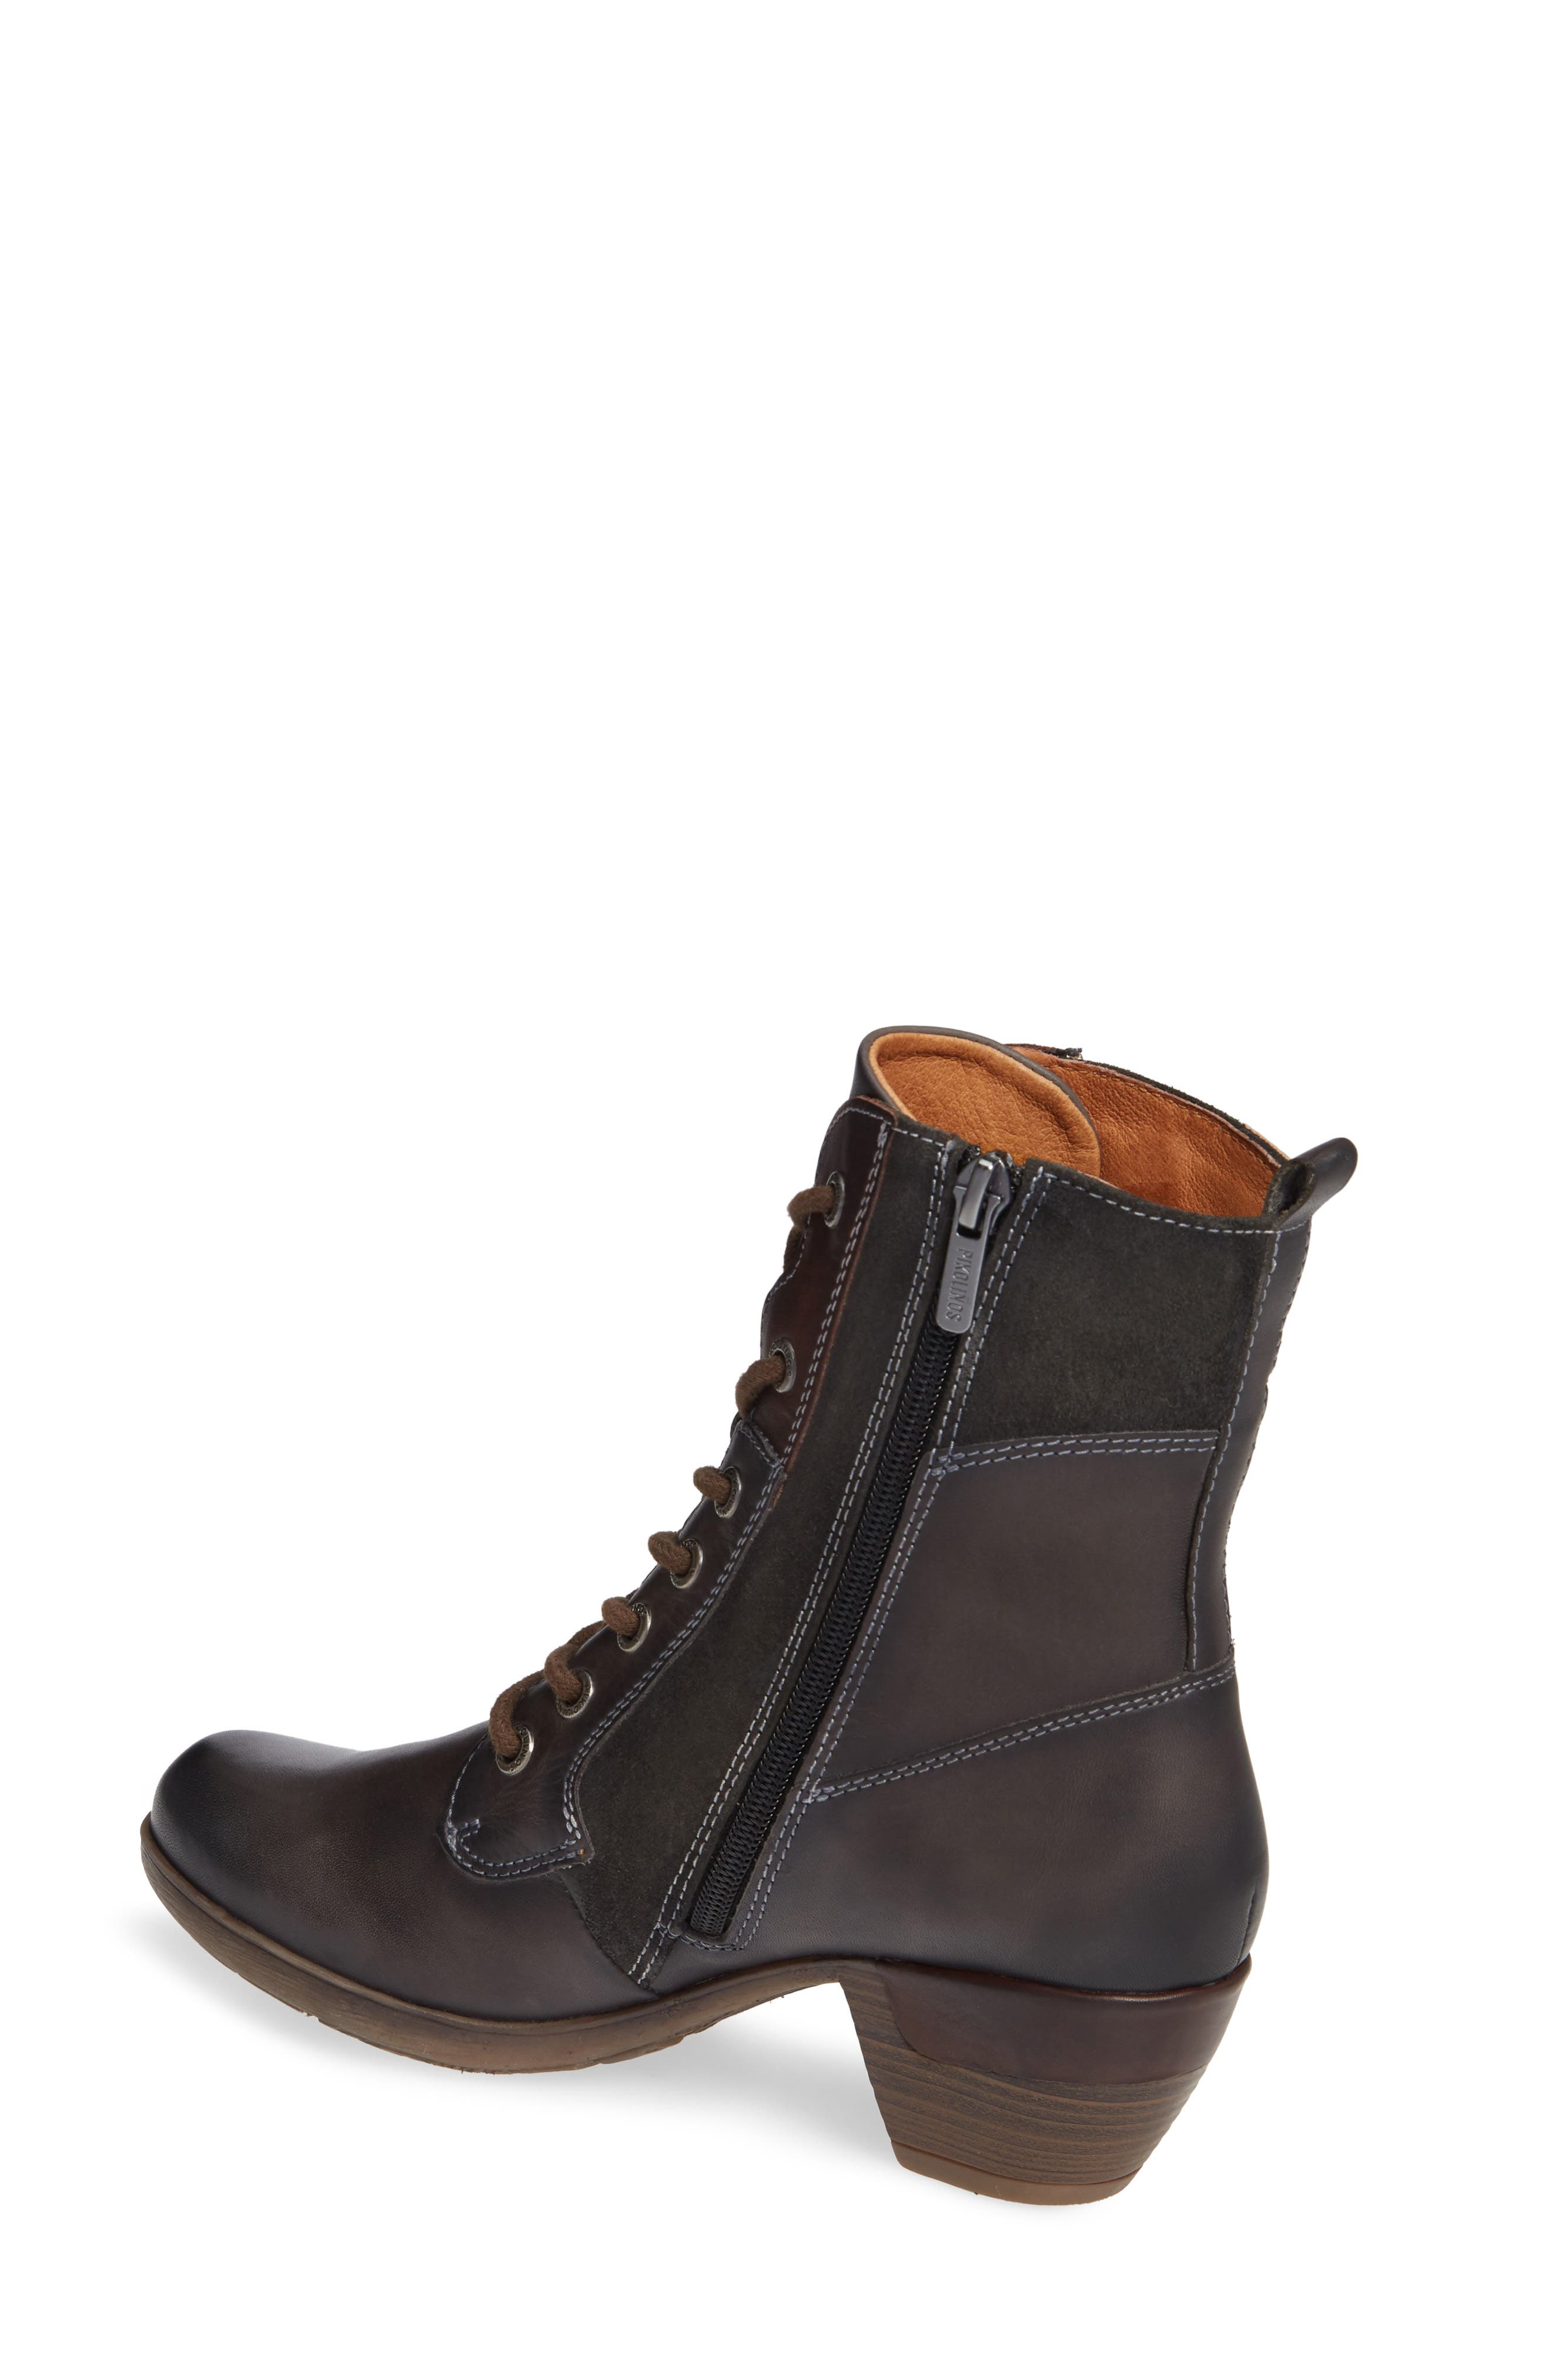 Rotterdam Bootie,                             Alternate thumbnail 2, color,                             LEAD LEATHER